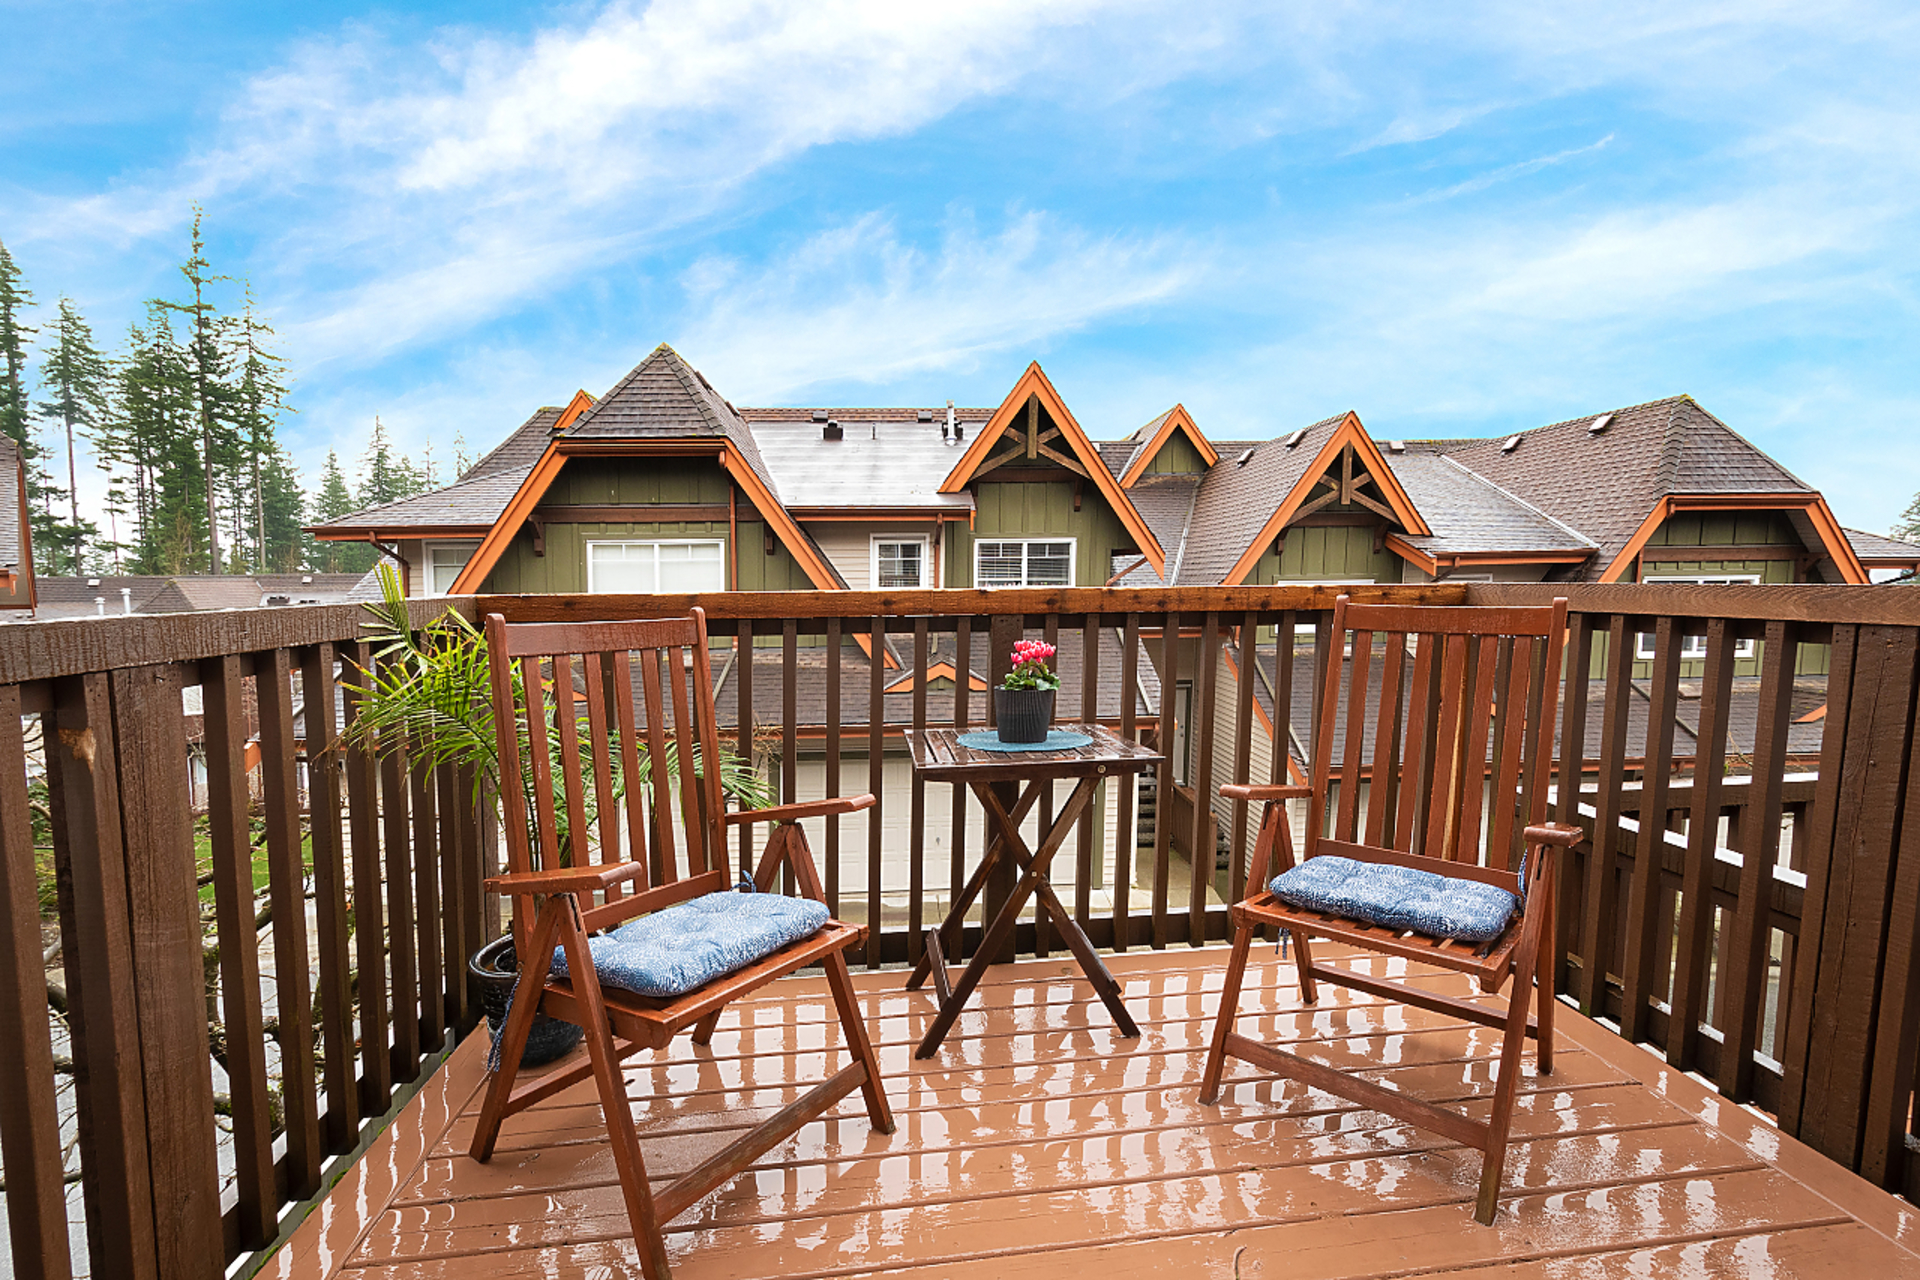 009 at 125 - 2000 Panorama Drive, Heritage Woods PM, Port Moody